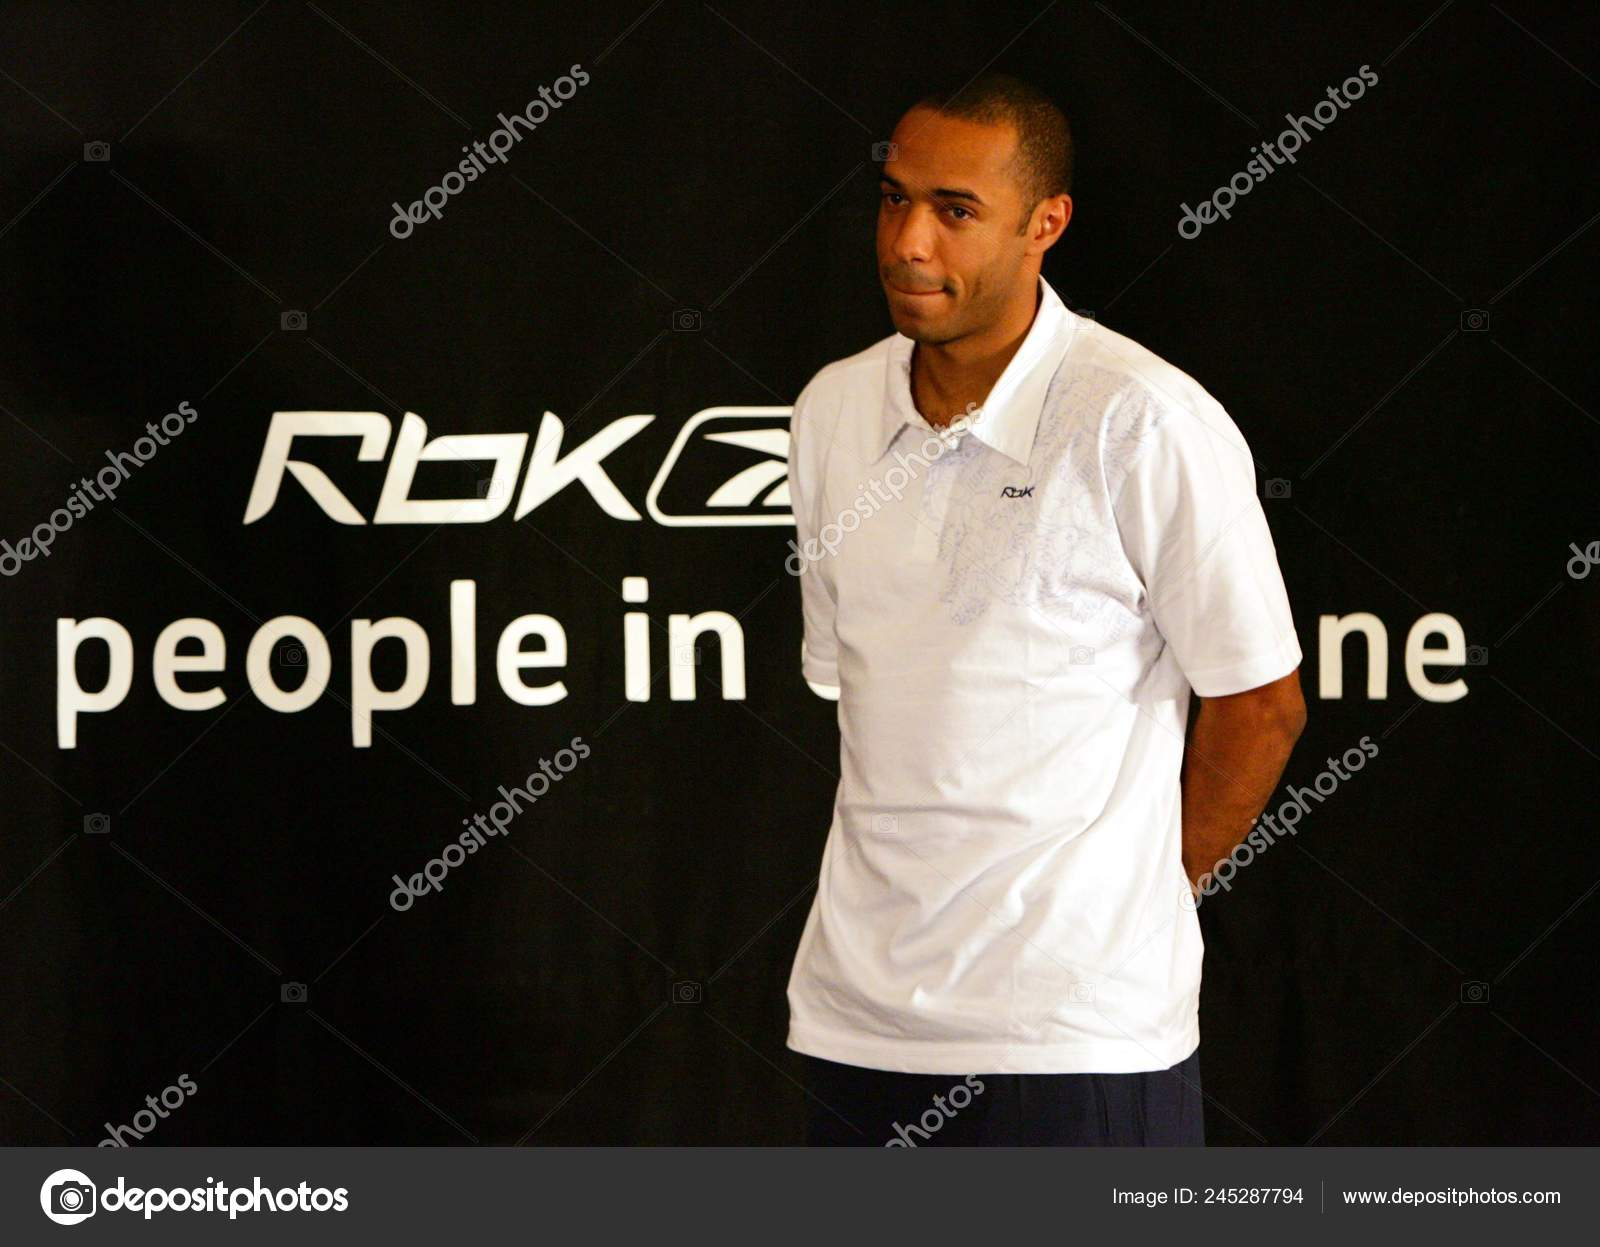 Colapso Circulo Ventilar  Arsenal Star French Forward Thierry Henry Promotional Event Reebok Beijing  – Stock Editorial Photo © ChinaImages #245287794